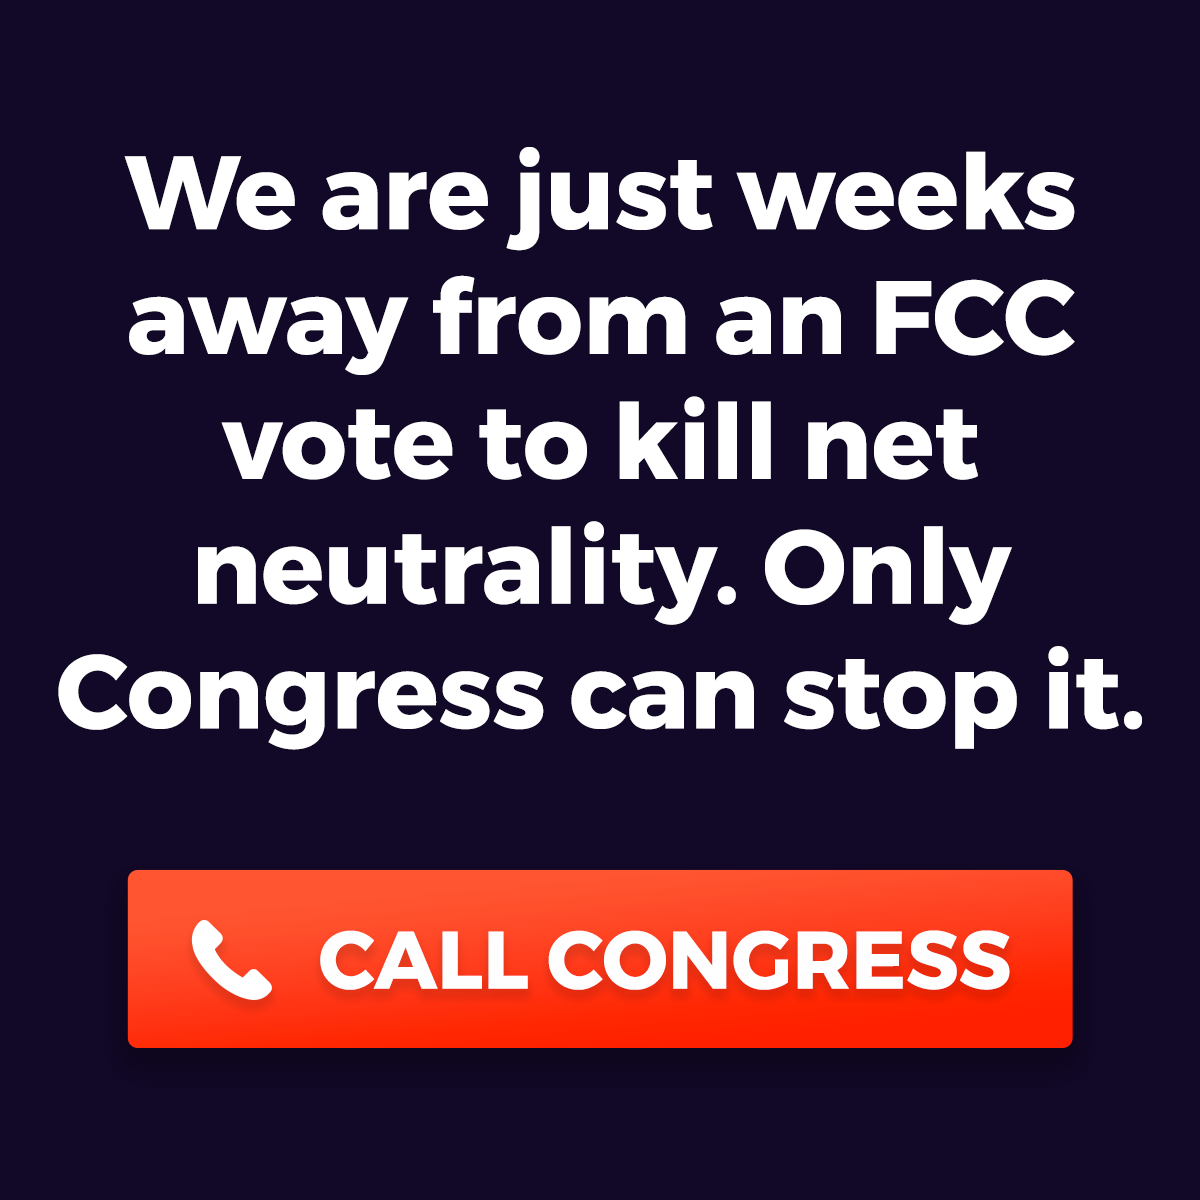 Call Congress